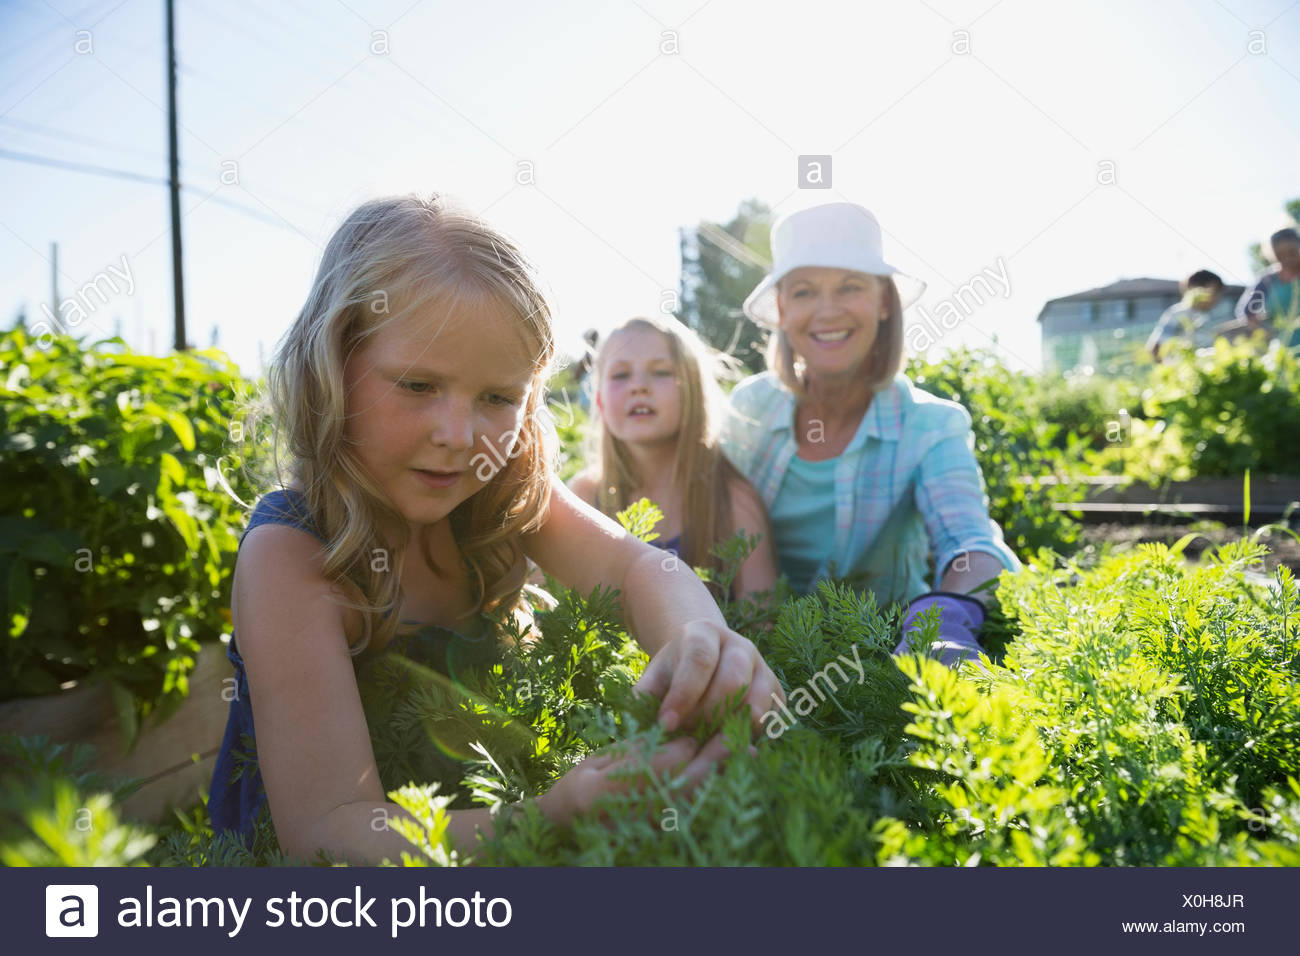 Grandmother and granddaughters tending to plants in garden - Stock Image